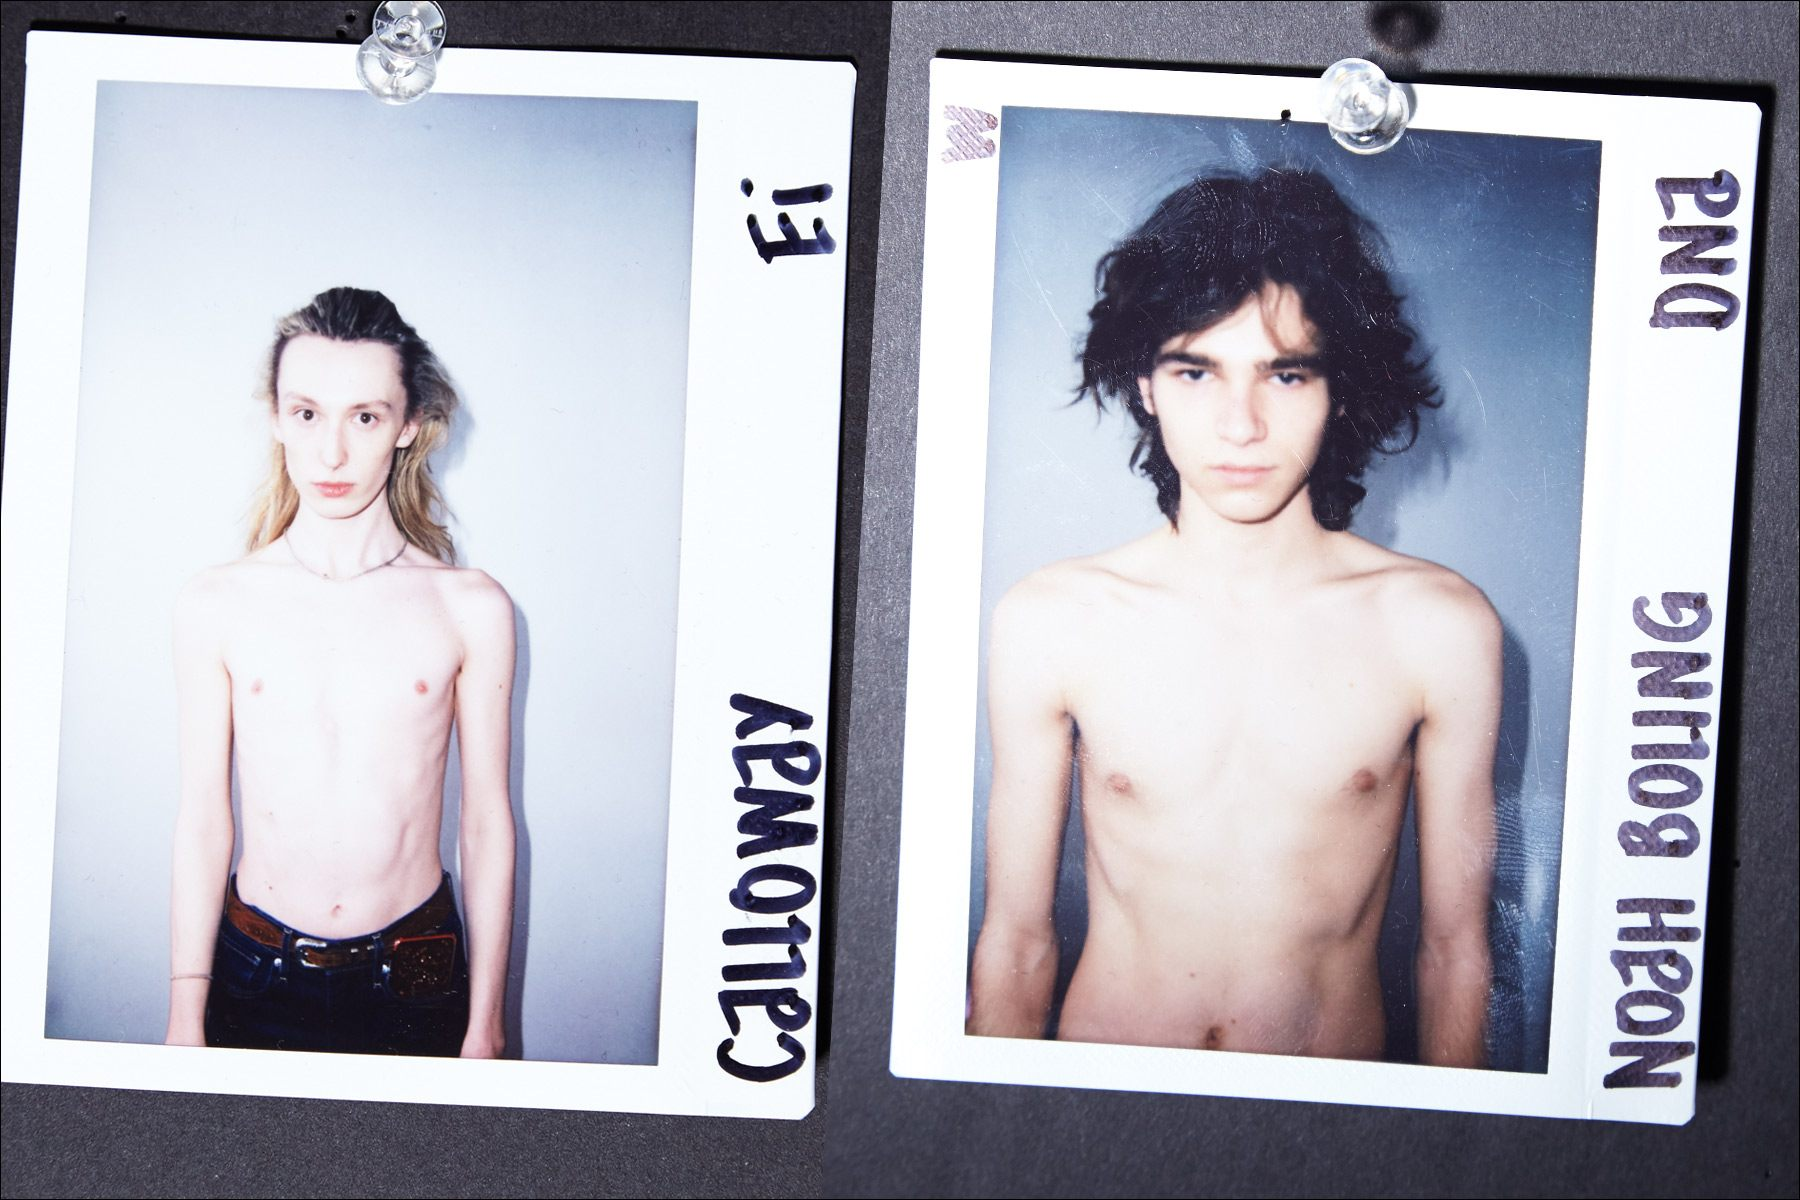 Polaroids of models Calloway and Noah Boling backstage at Luar Fall 2018 collection. Photography by Alexander Thompson for Ponyboy magazine.